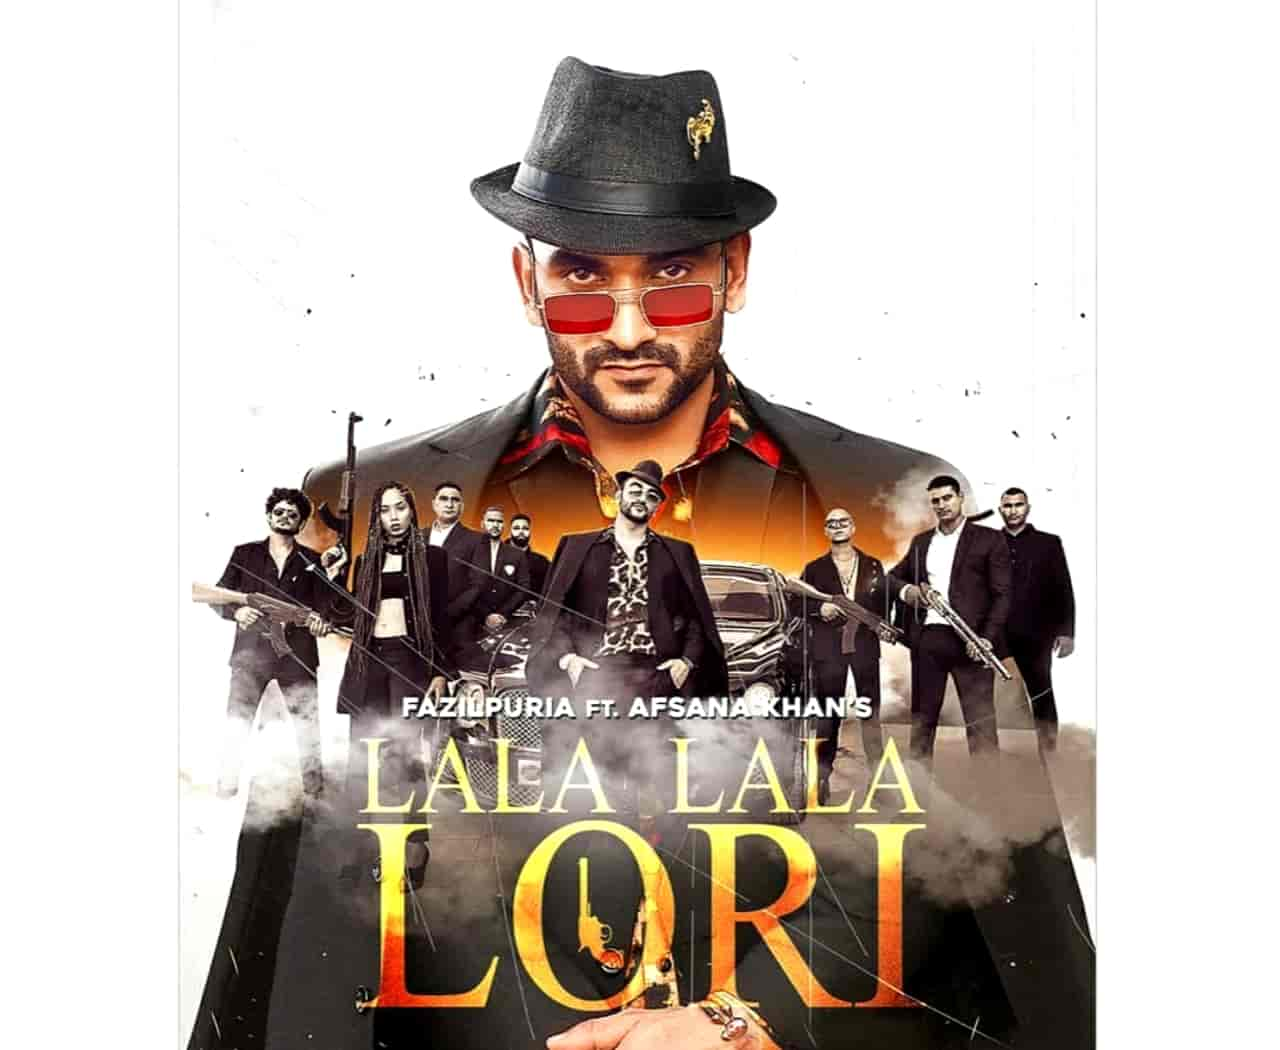 Lala Lala Lori Haryanvi Song Image Features Fazilpuria and Afsana Khan